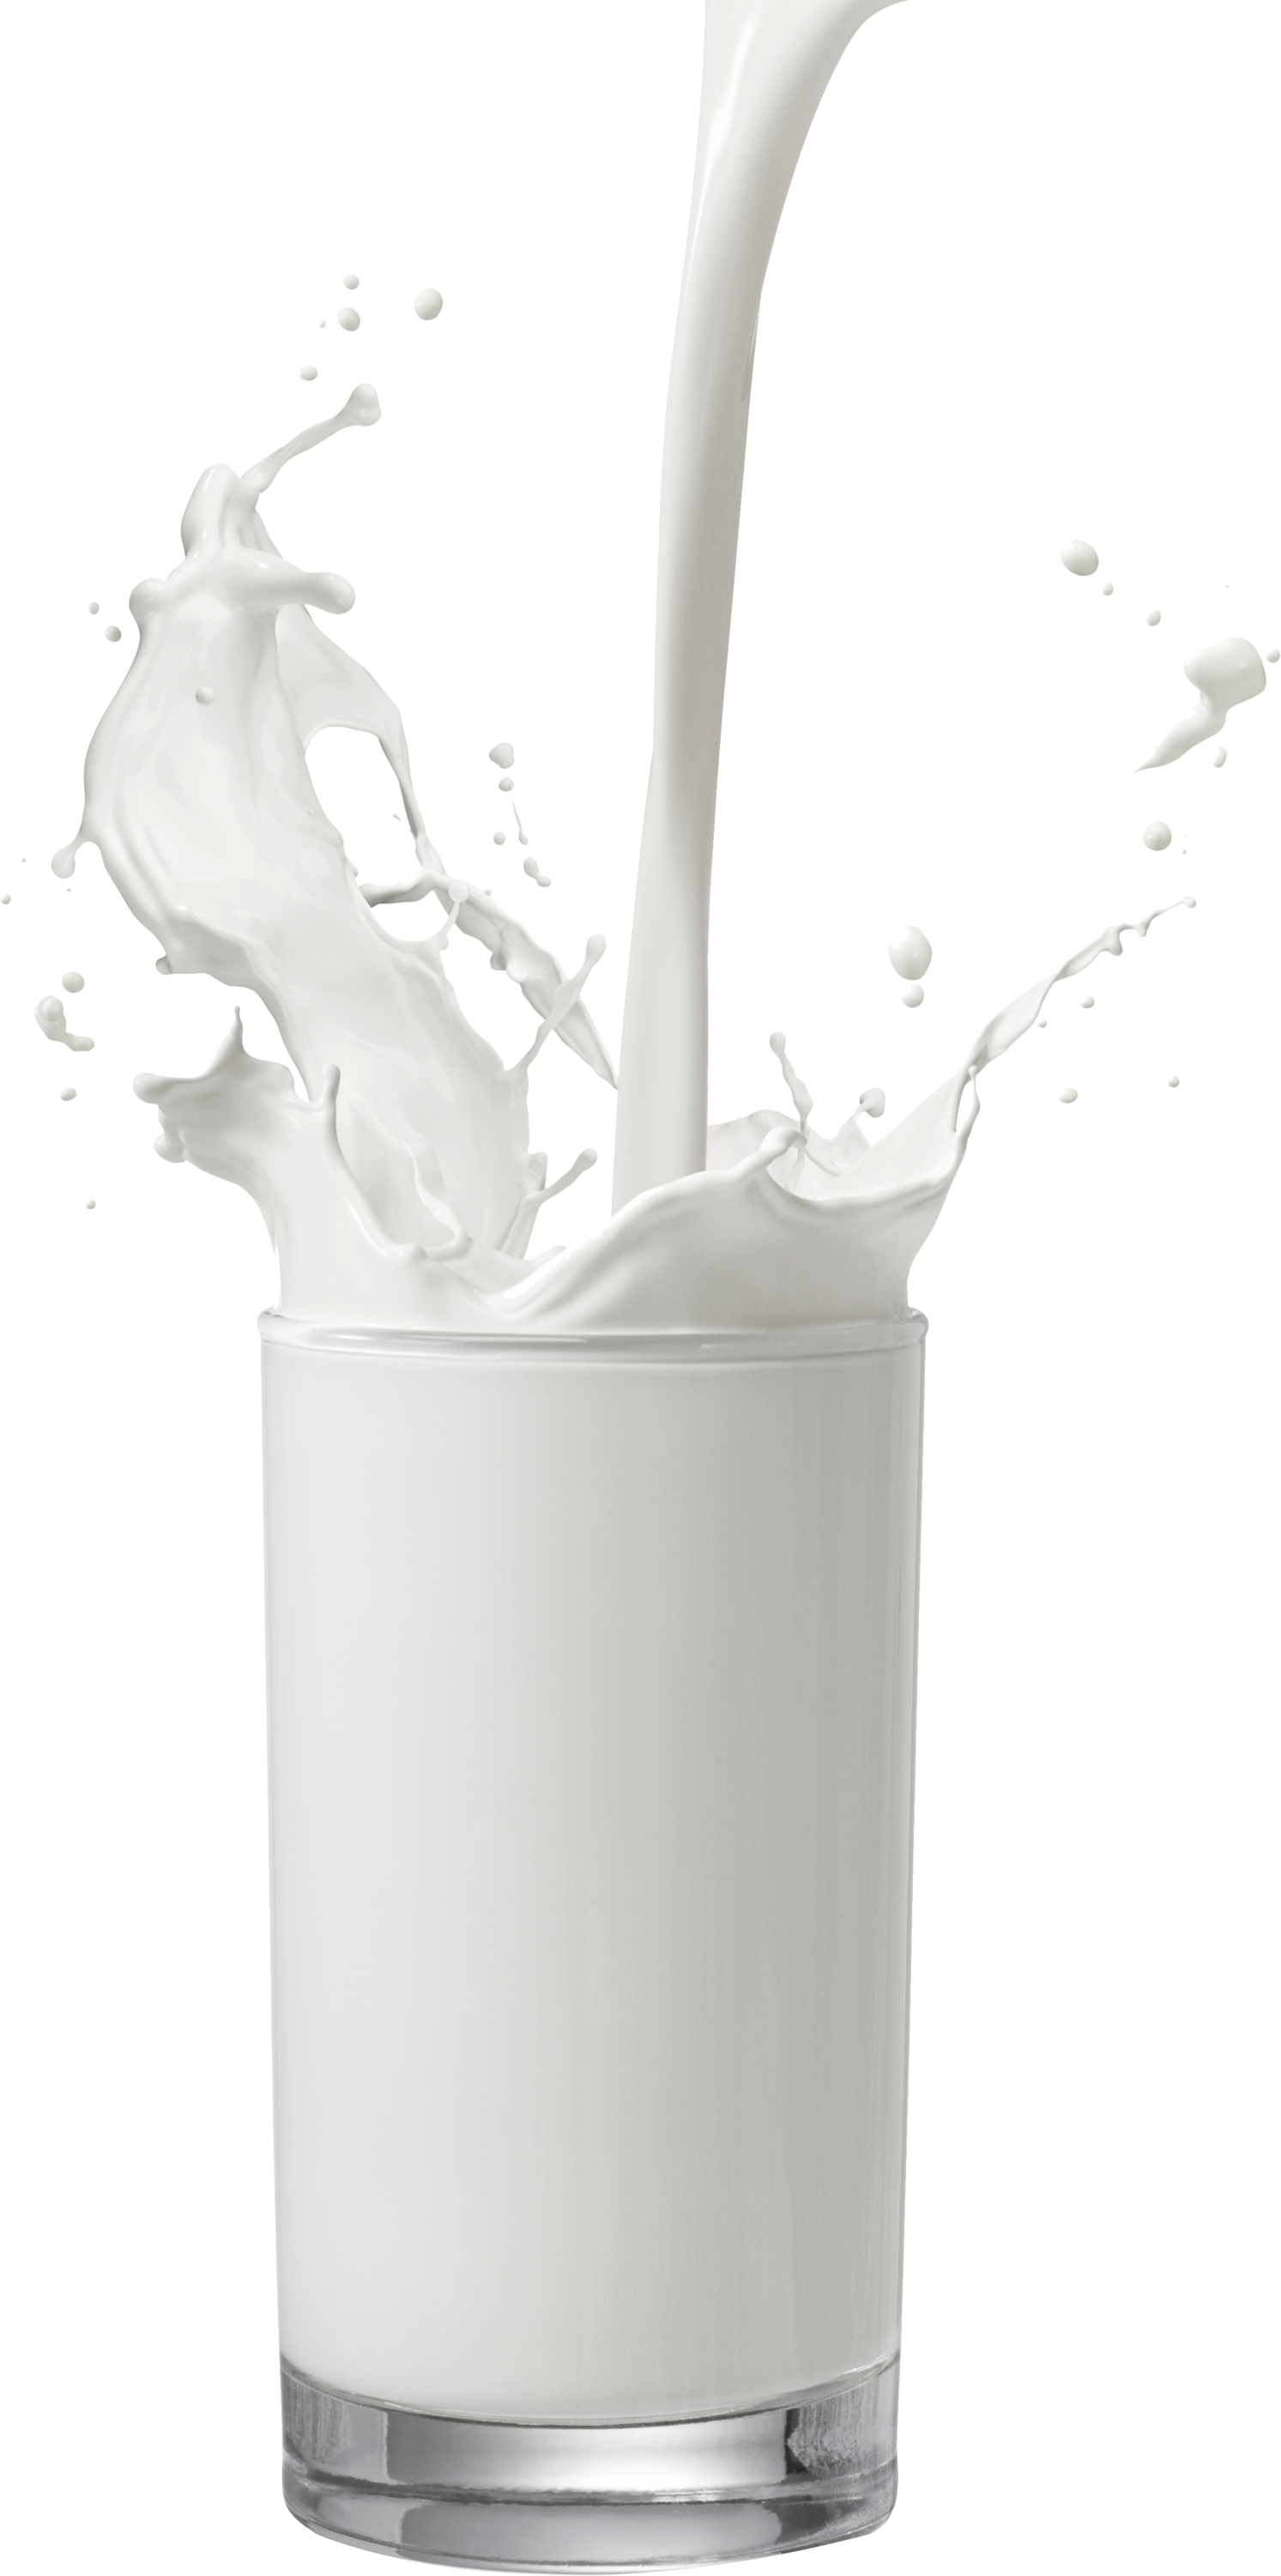 Milk Png Image In 2020 Transparent Background Milk Transparent